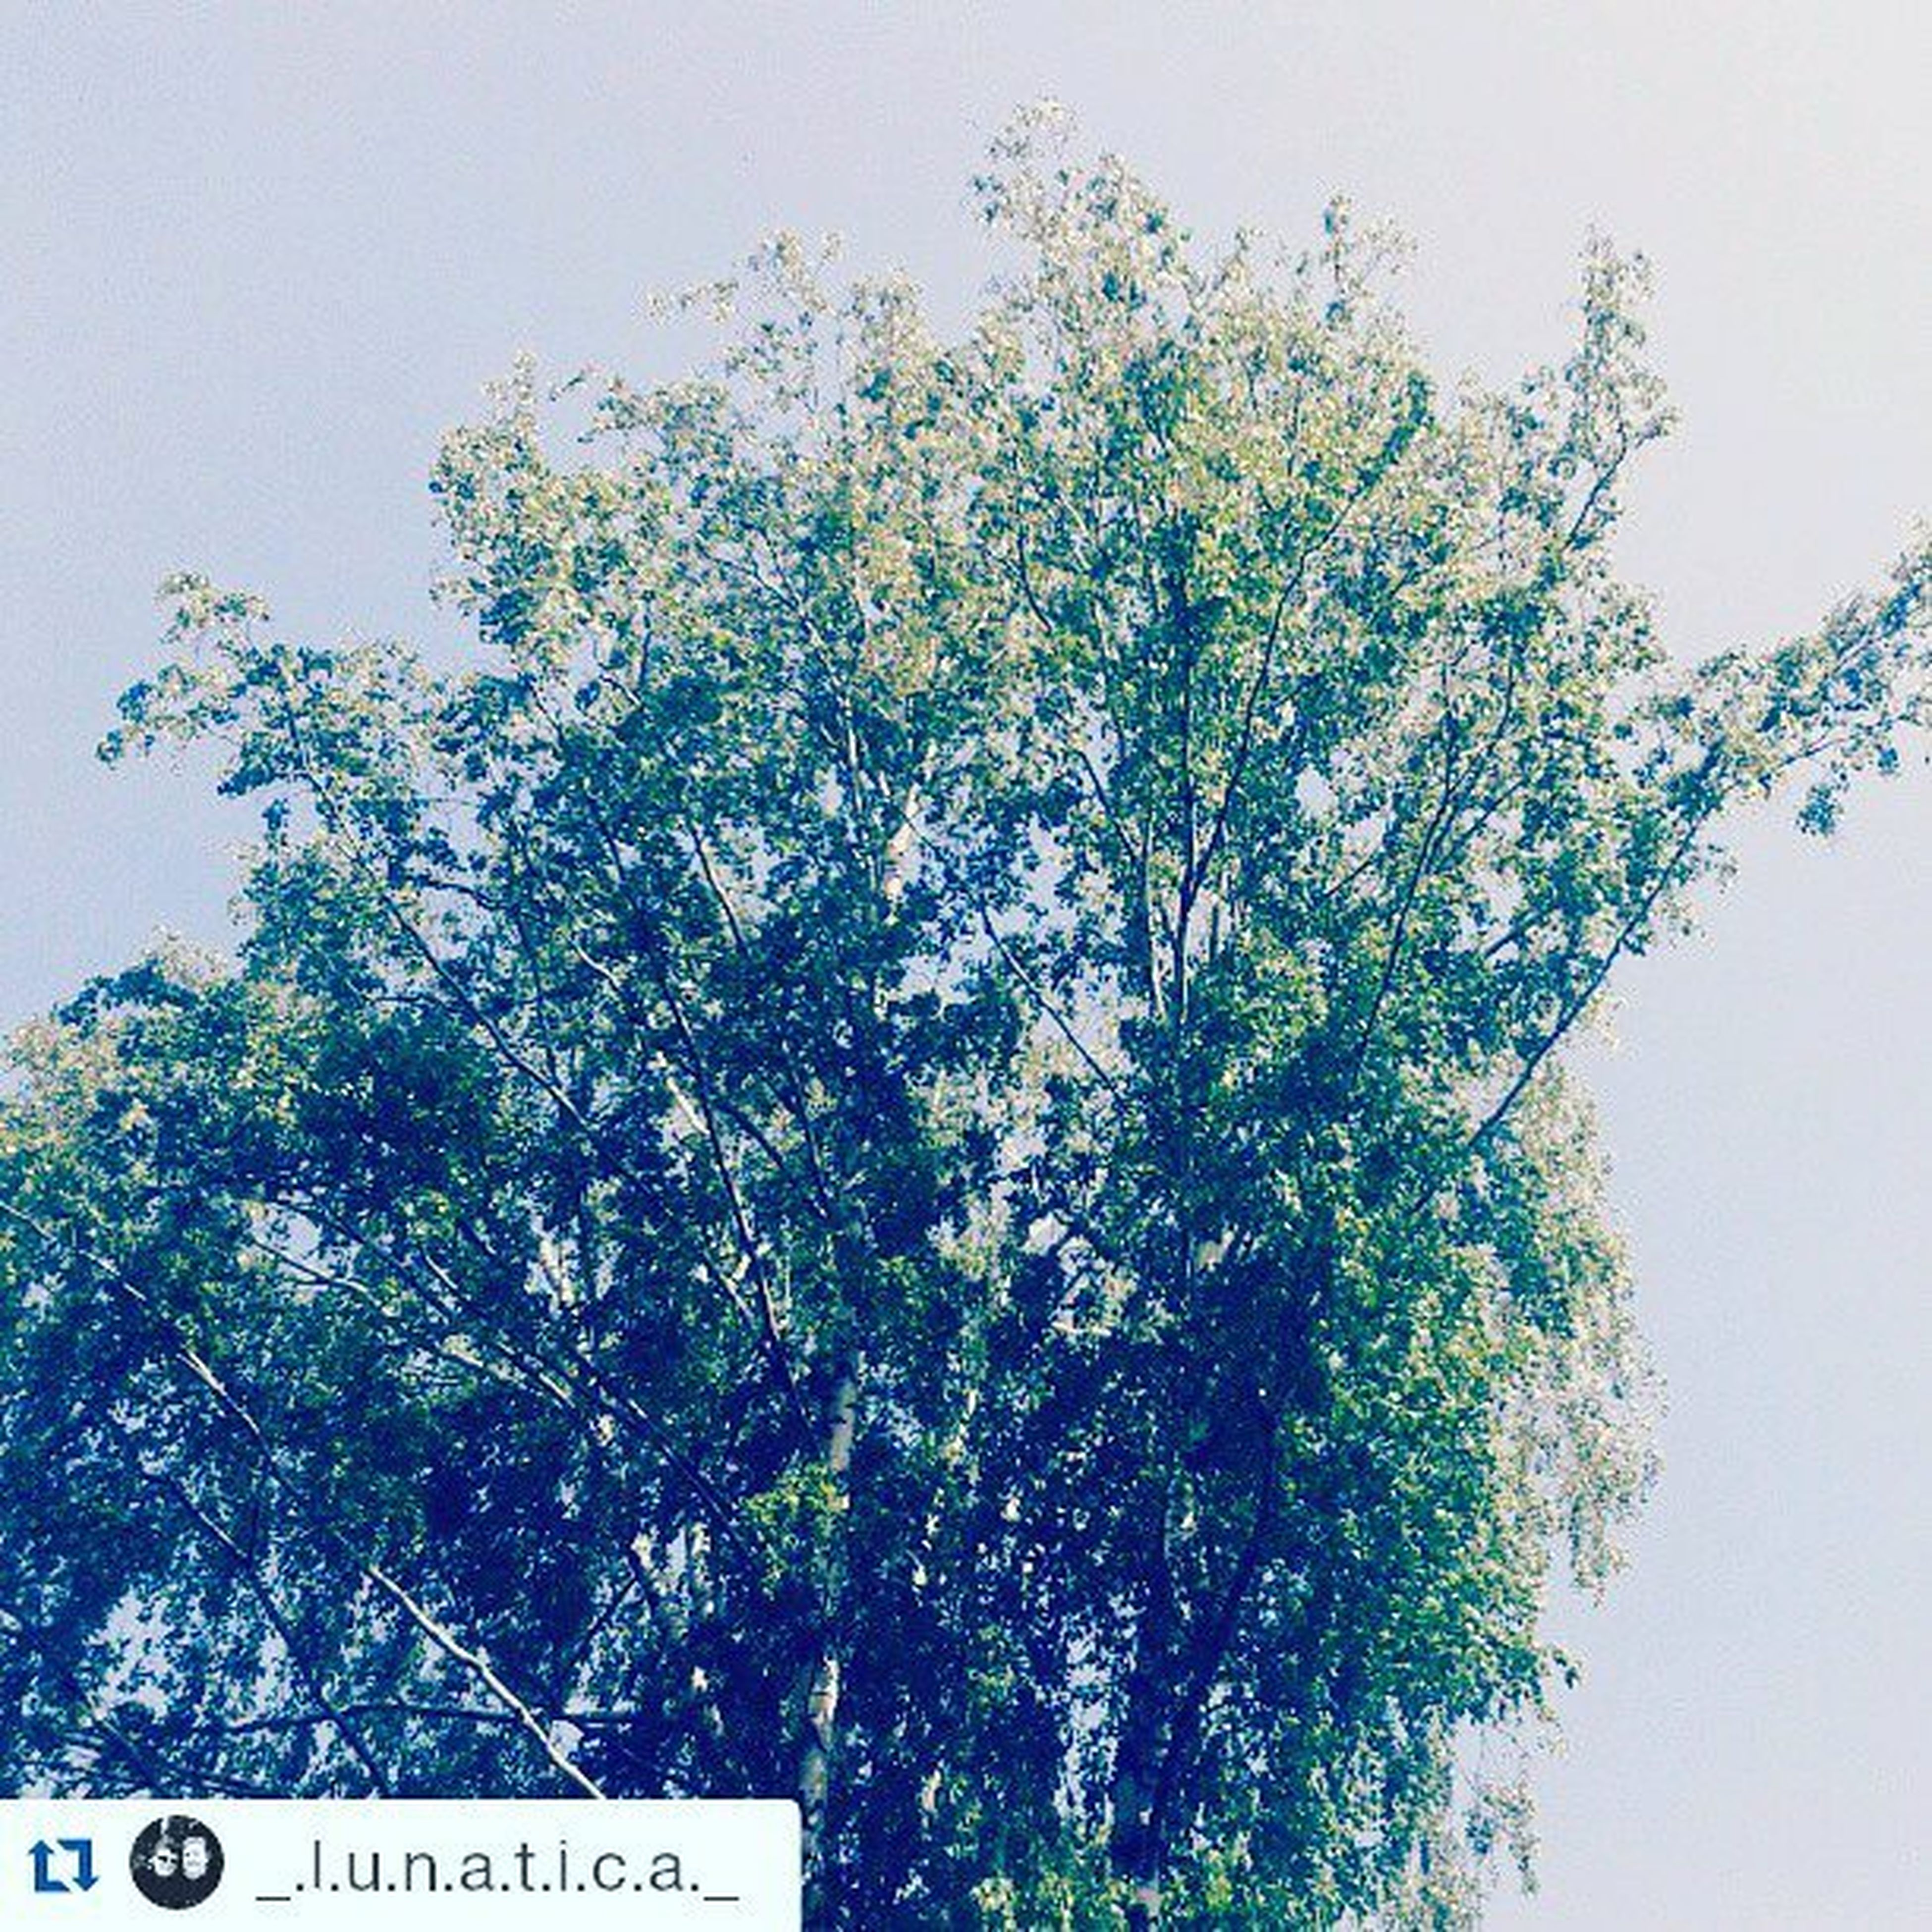 tree, low angle view, text, growth, clear sky, branch, western script, communication, nature, sky, day, high section, beauty in nature, no people, outdoors, flower, copy space, tranquility, non-western script, plant